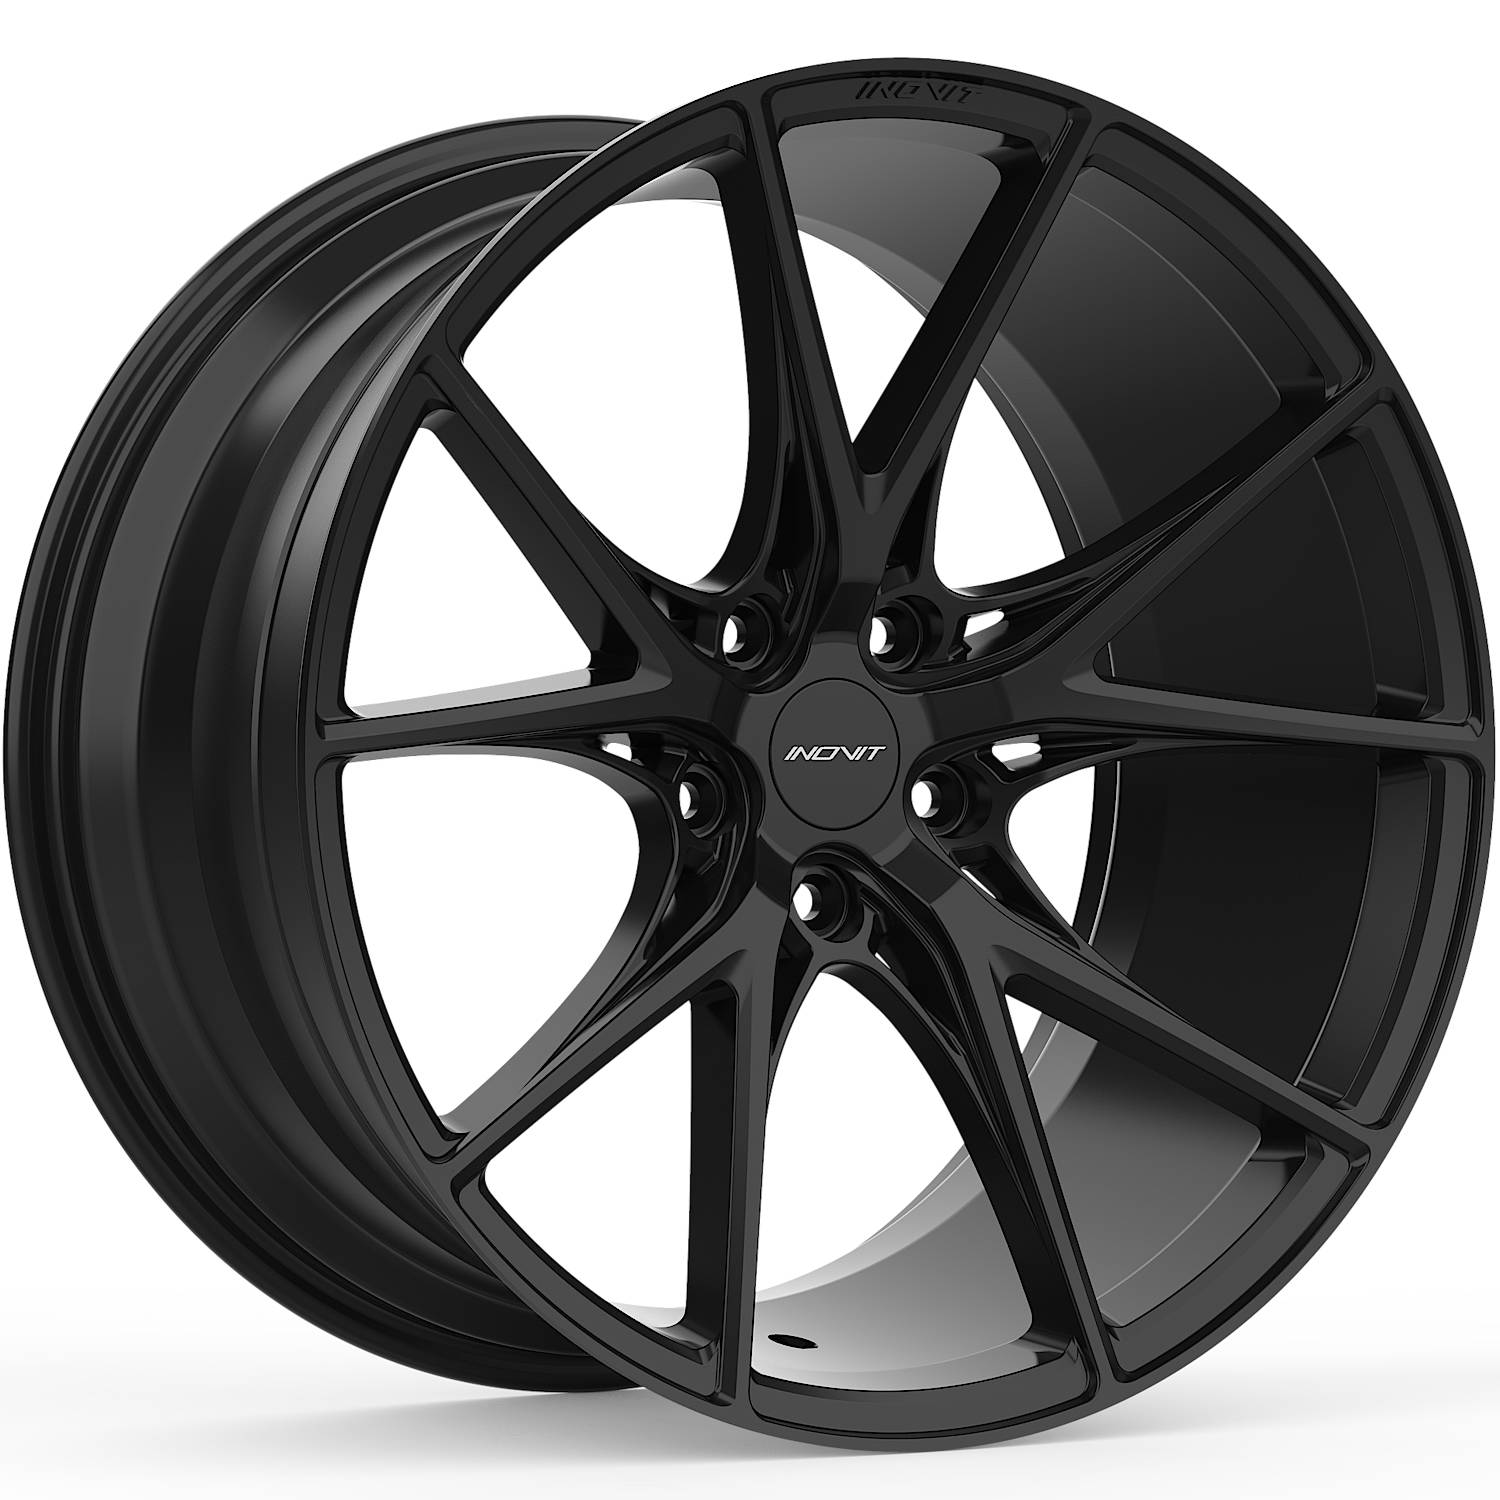 INOVIT Speed Satin Black19x8.5 +37mm